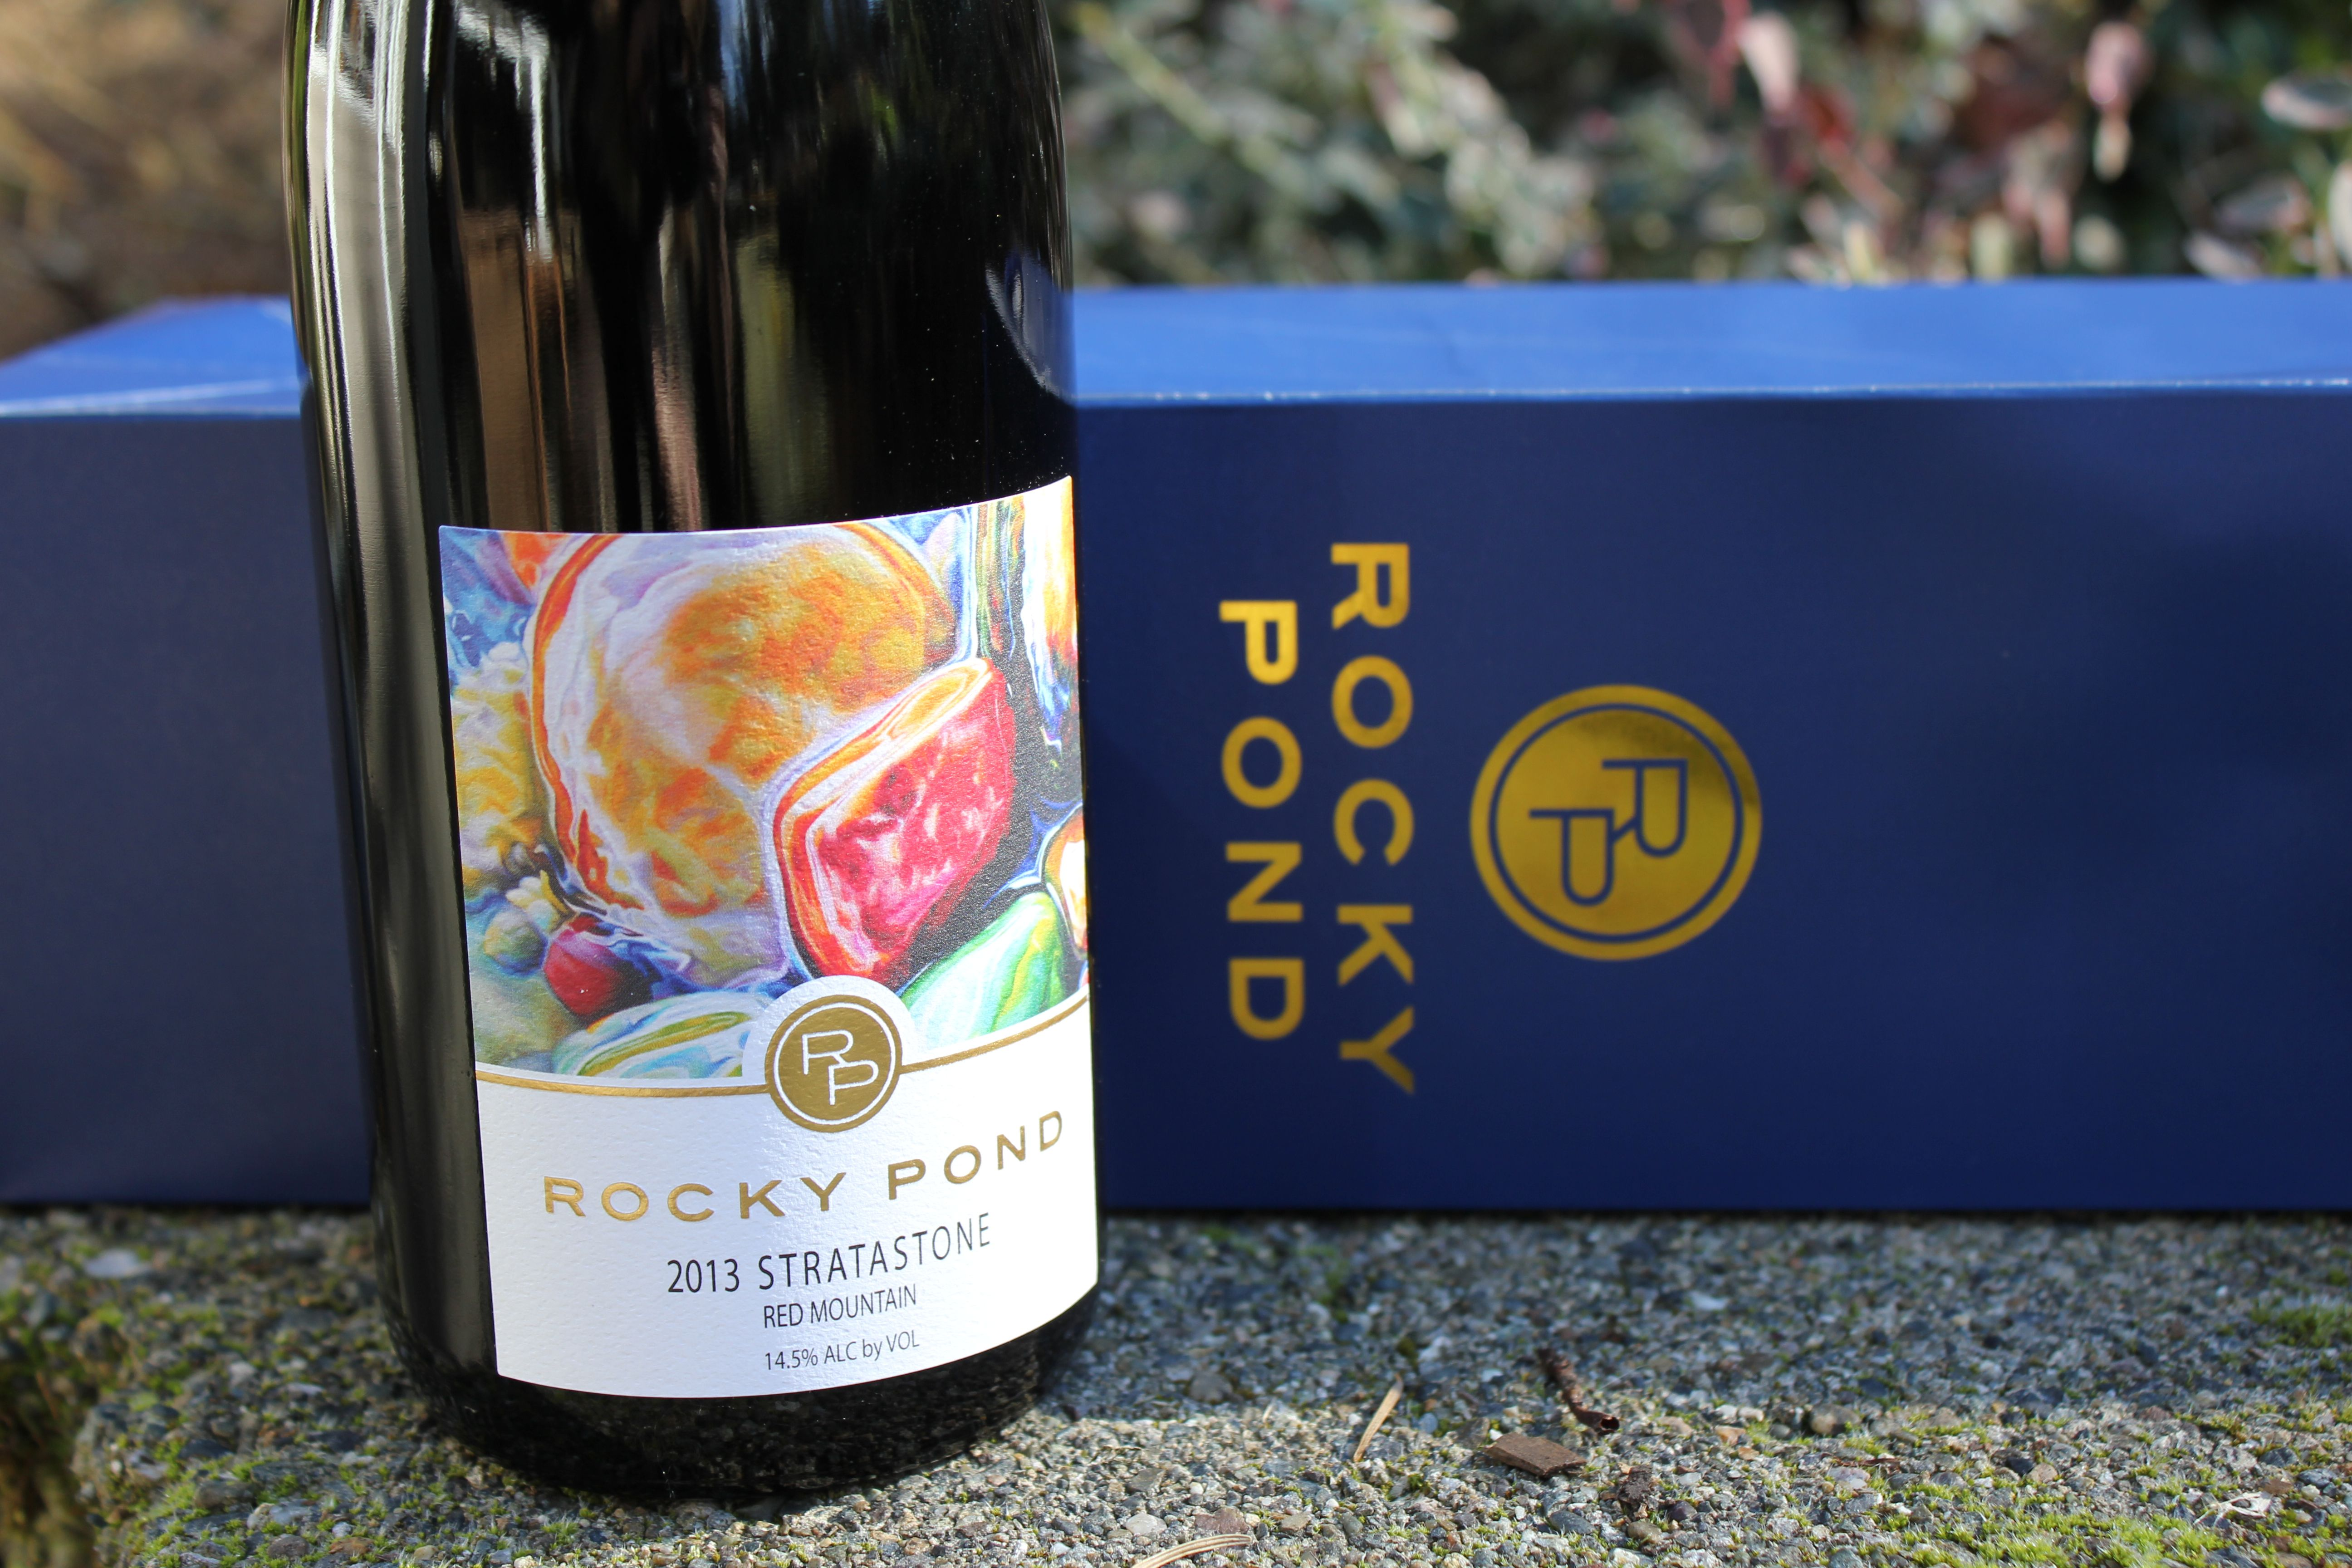 Rocky Pond Wine Launch in Woodinville Wine Country. For highlights on other wineries and wine events go to http://bit.ly/1DOqQiK #Wawine #Woodinville